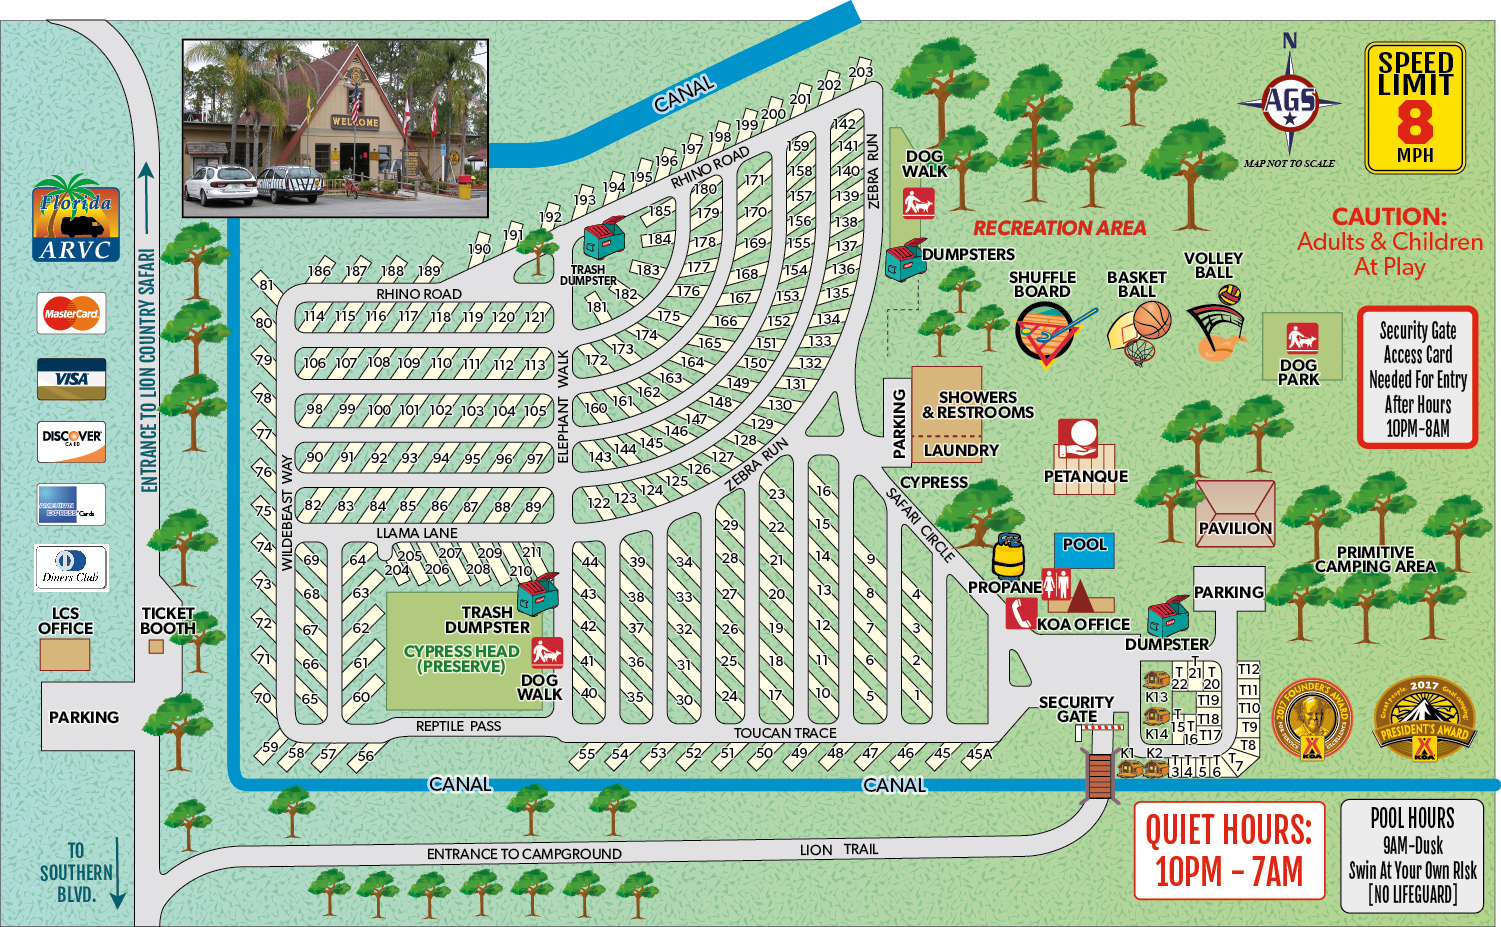 Loxahatchee, Florida Campground | West Palm Beach / Lion Country - Lion Country Safari Florida Map